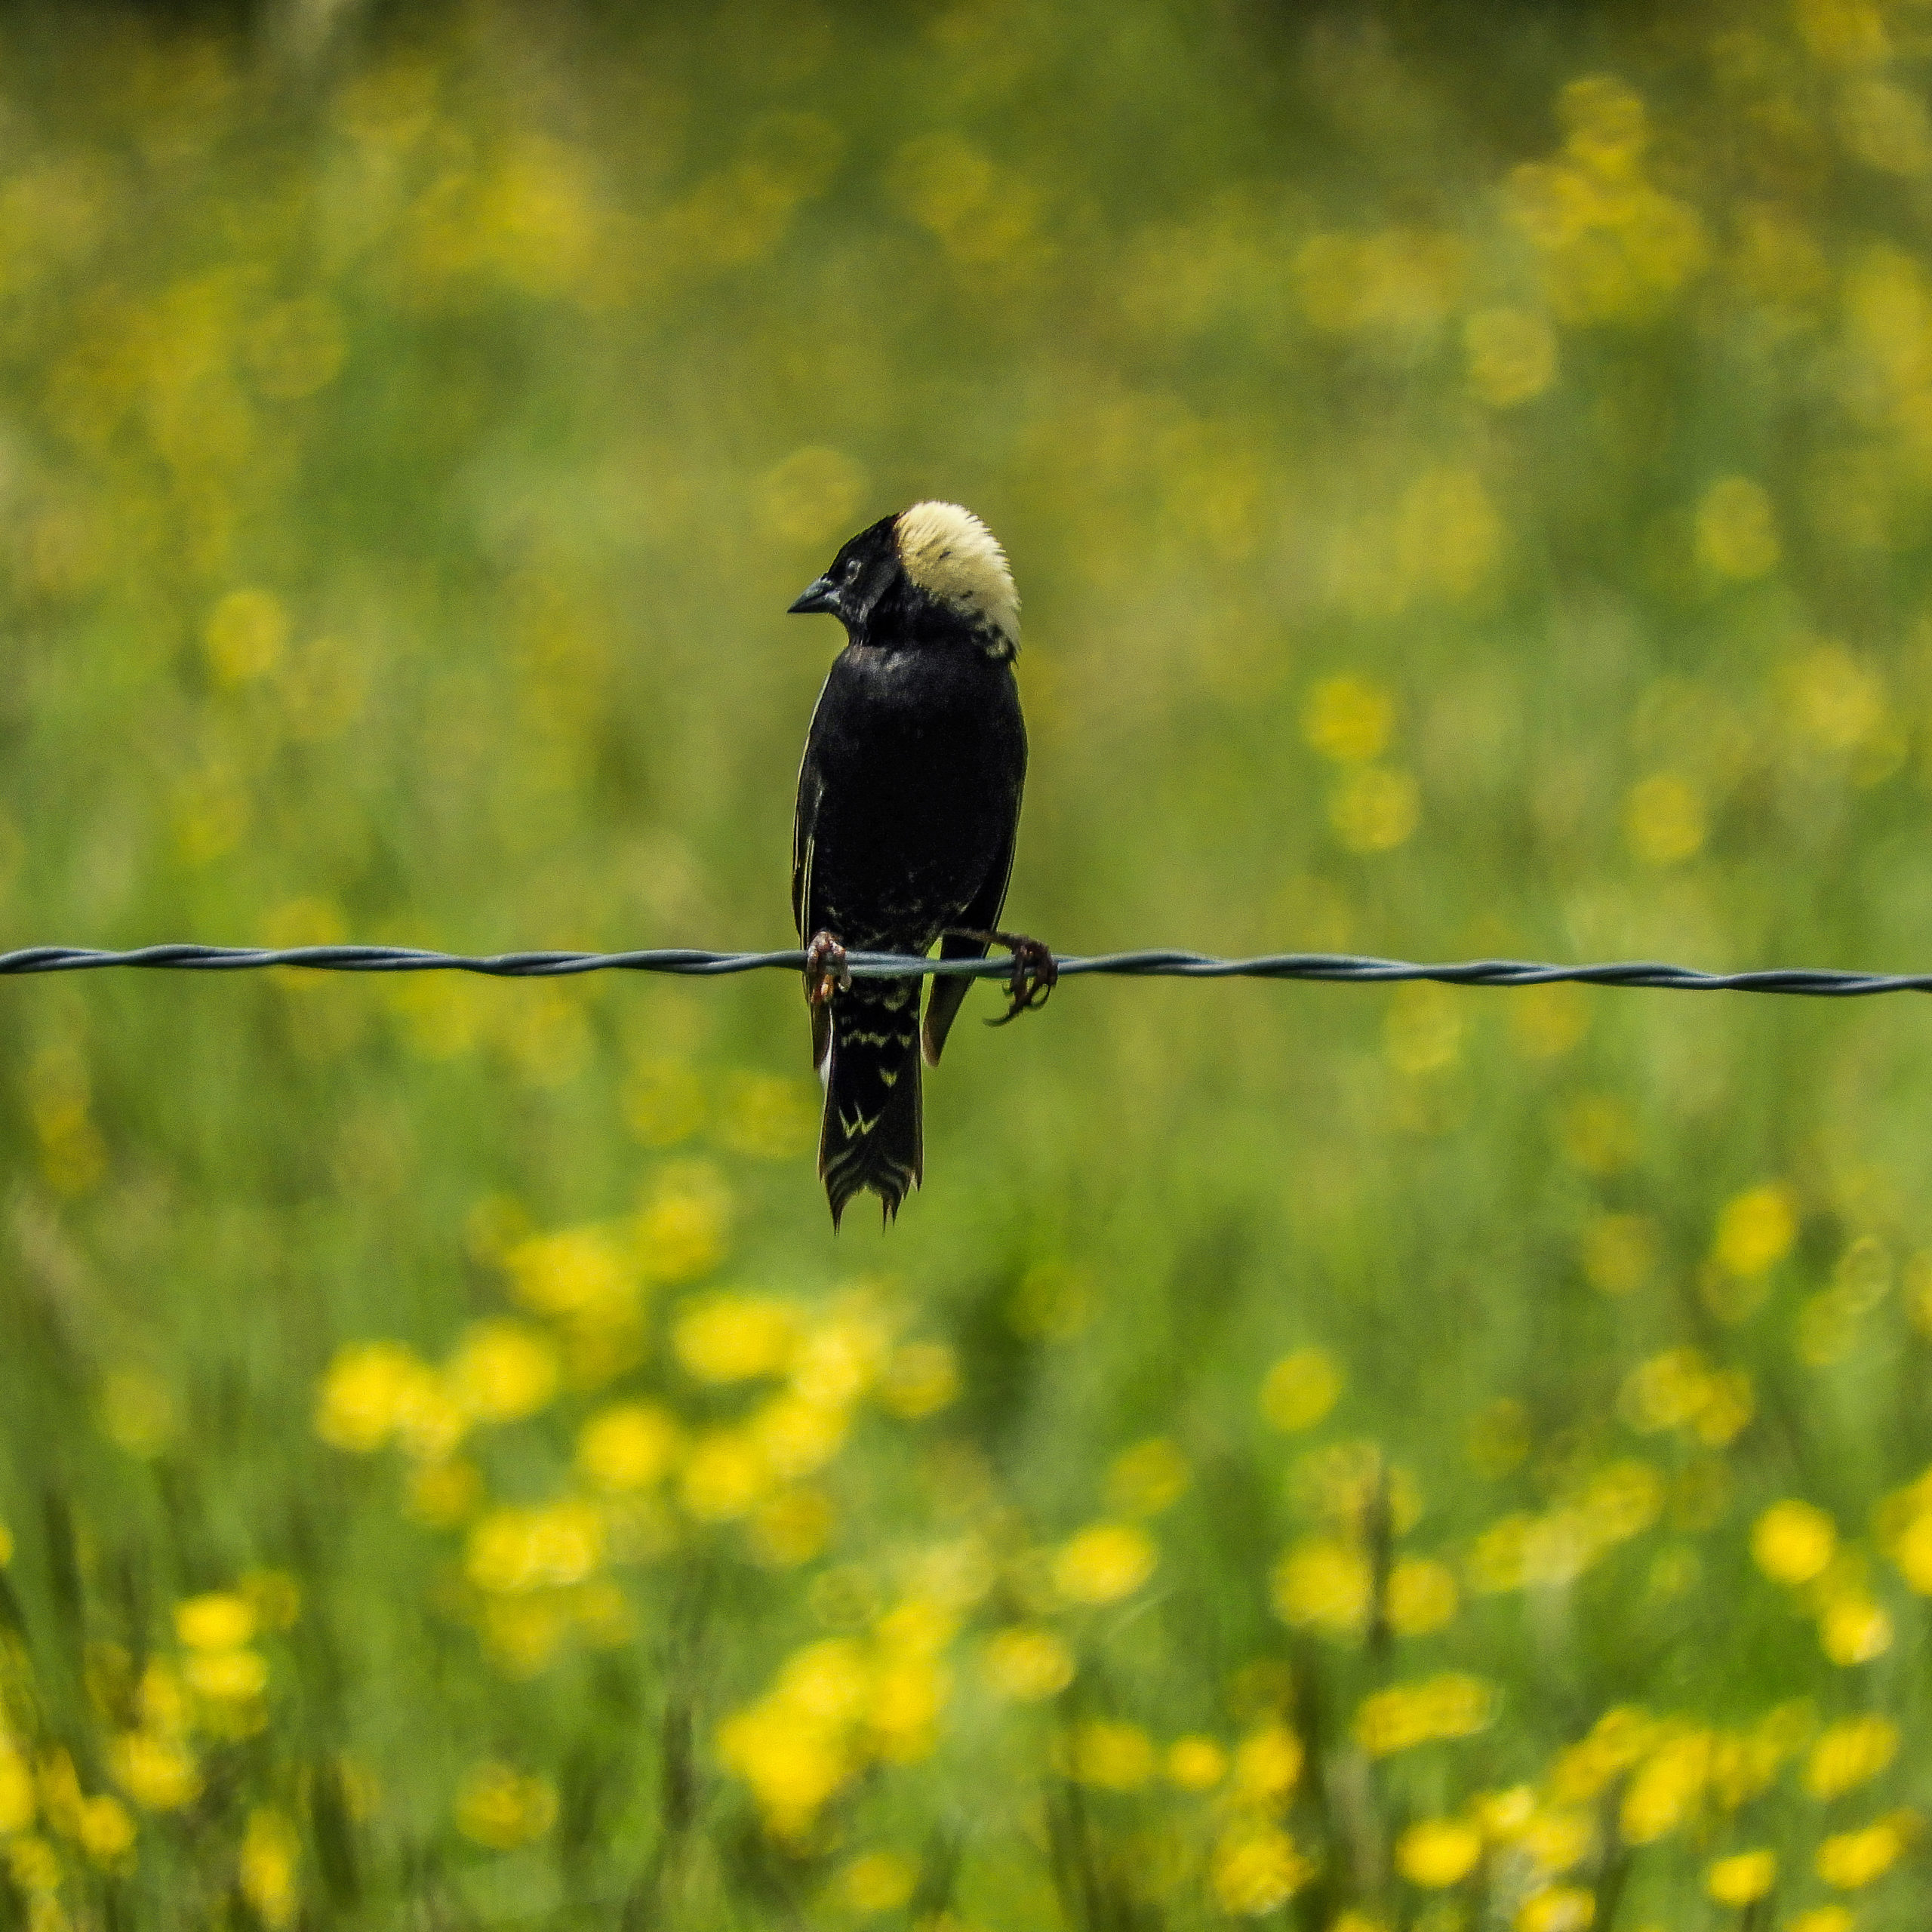 Bobolink bird sits on a fence wire and looks to the left